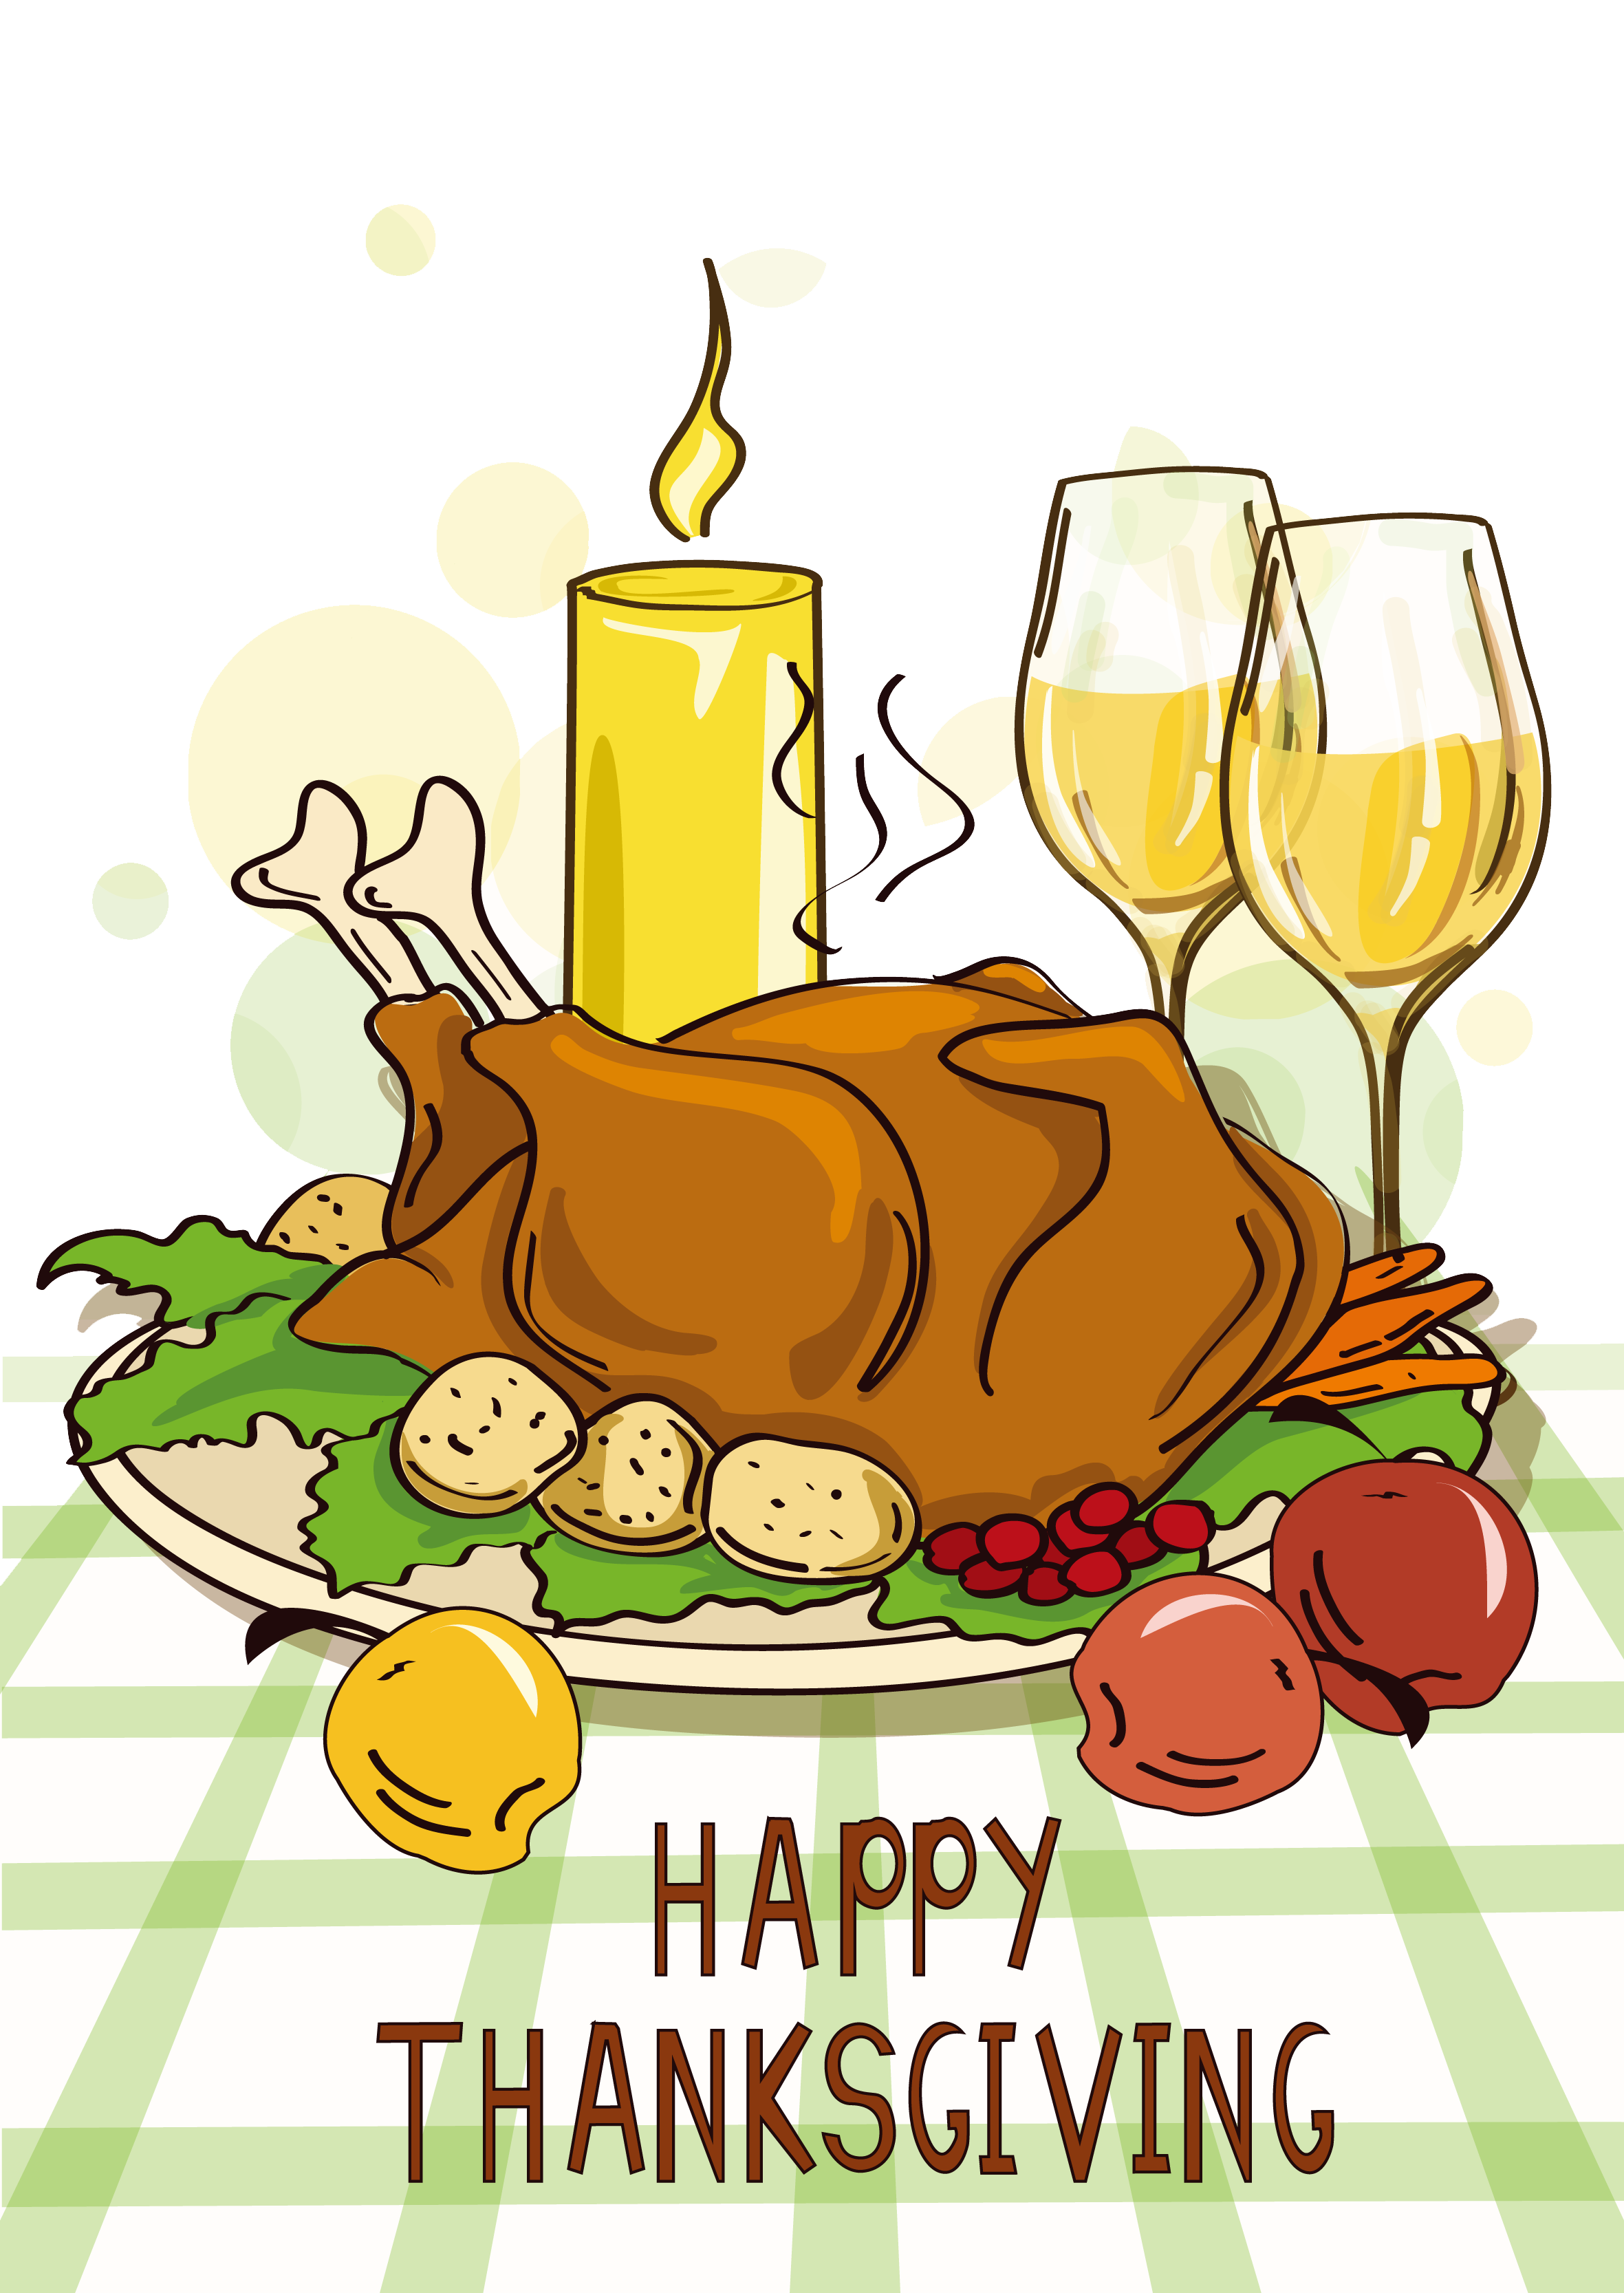 Dinner vector thanksgiving. Turkey meat cartoon chicken